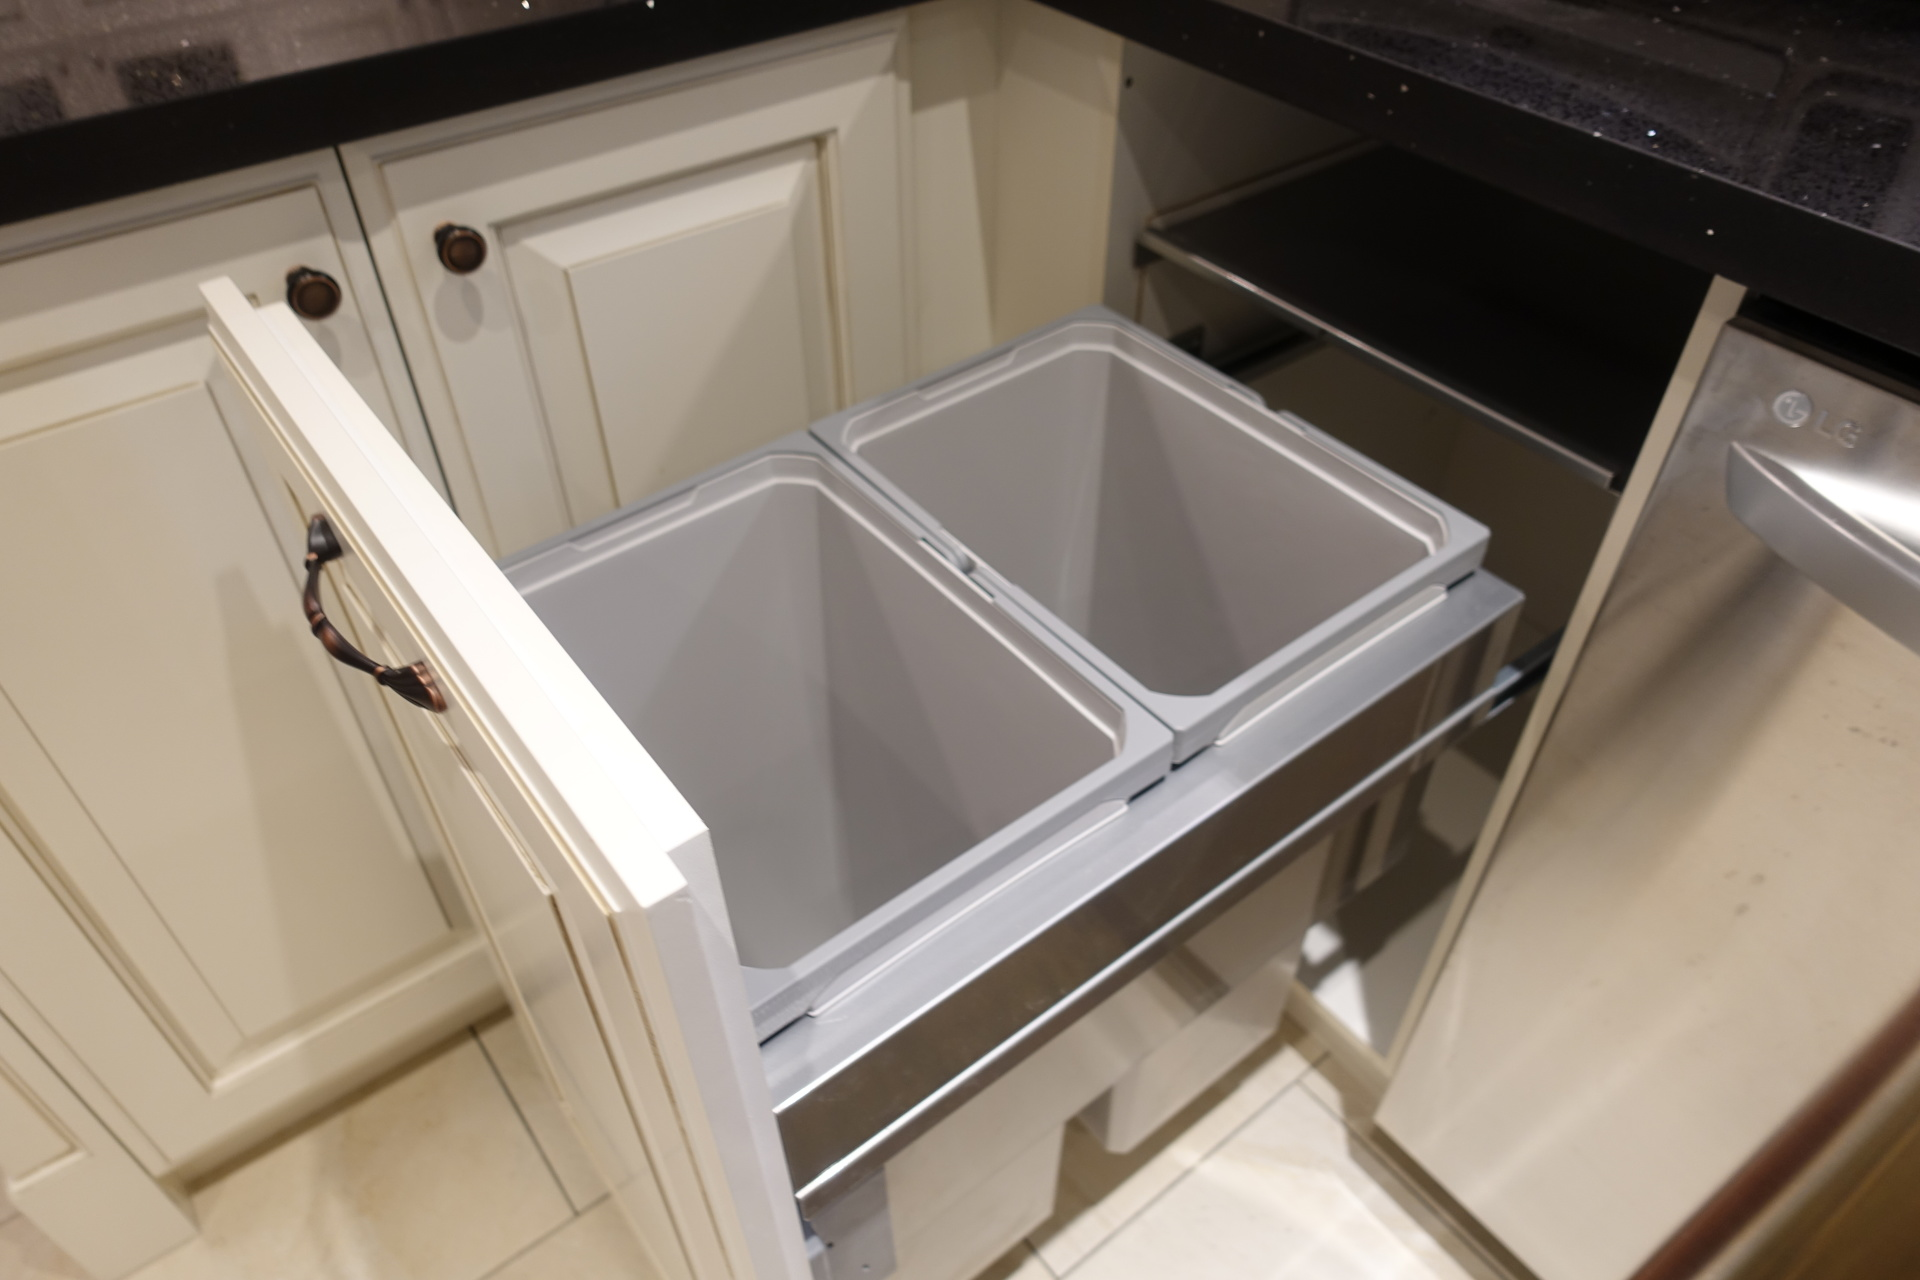 Door mount pull-out waste bin